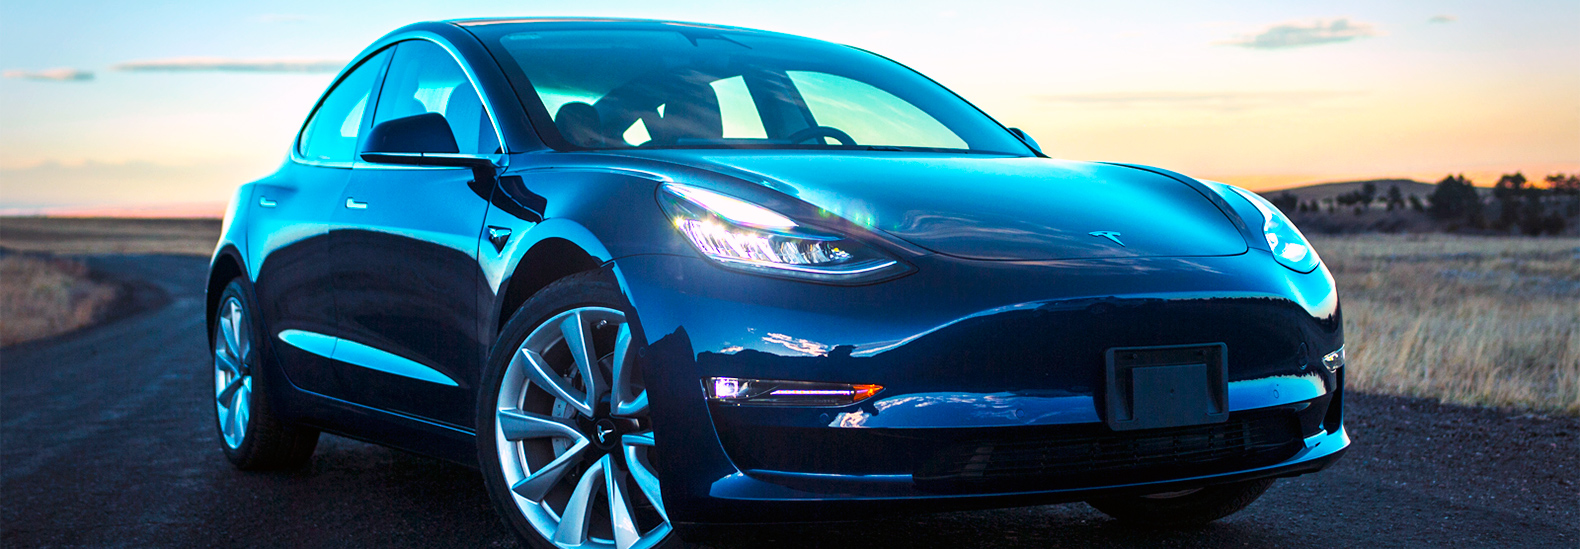 What Is The Benefit Of Electric Cars